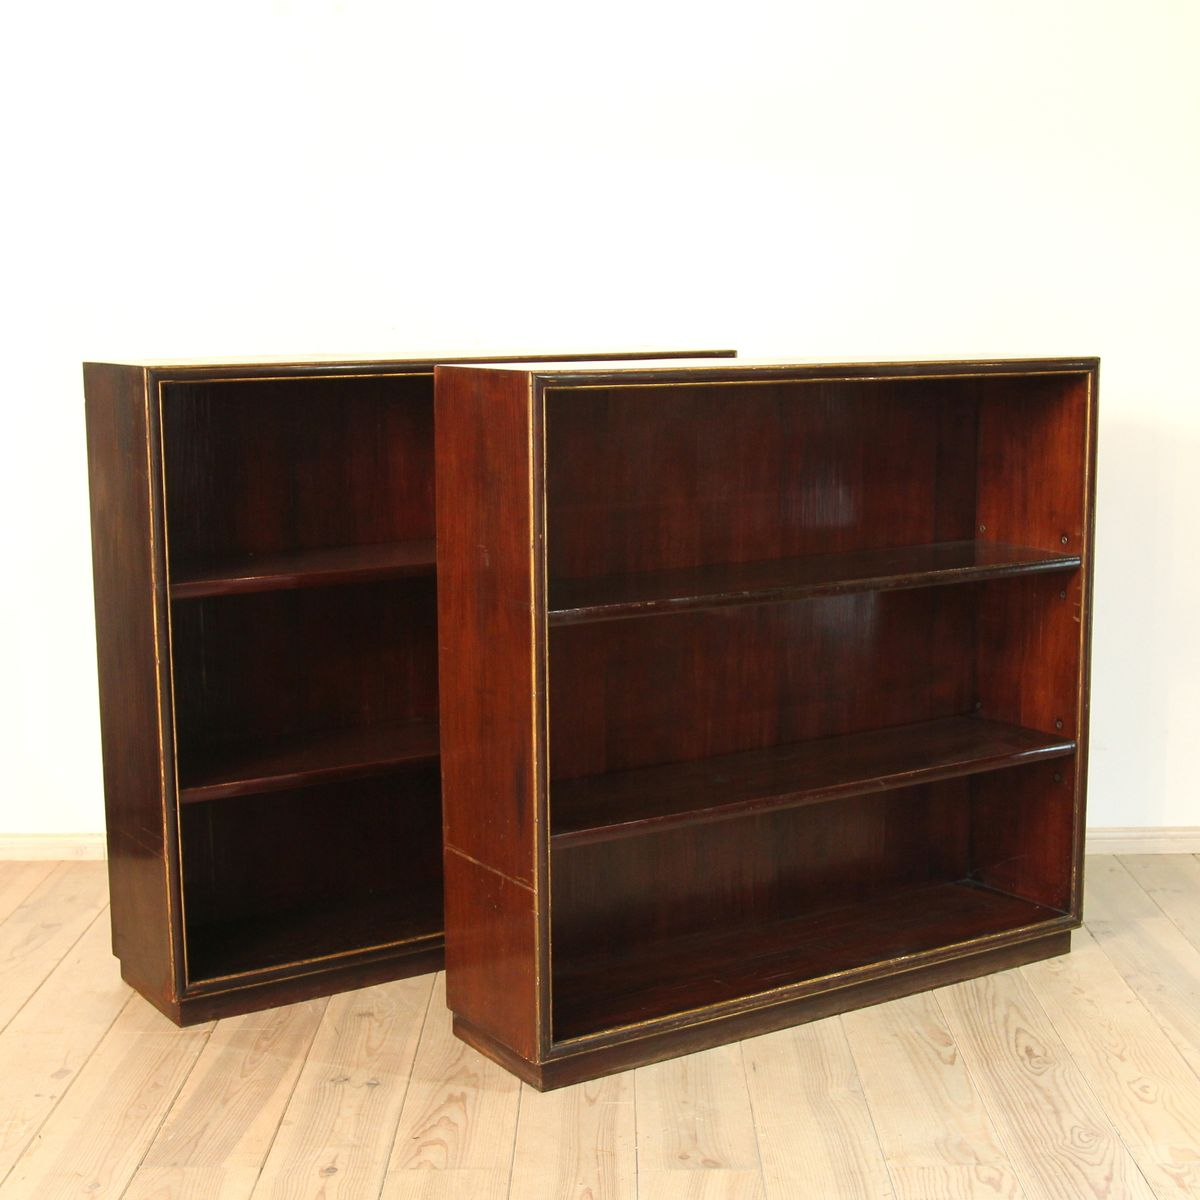 Wonderful image of Pair of Italian Shelves 1920s Set of 2 for sale at Pamono with #B17C1A color and 1200x1200 pixels